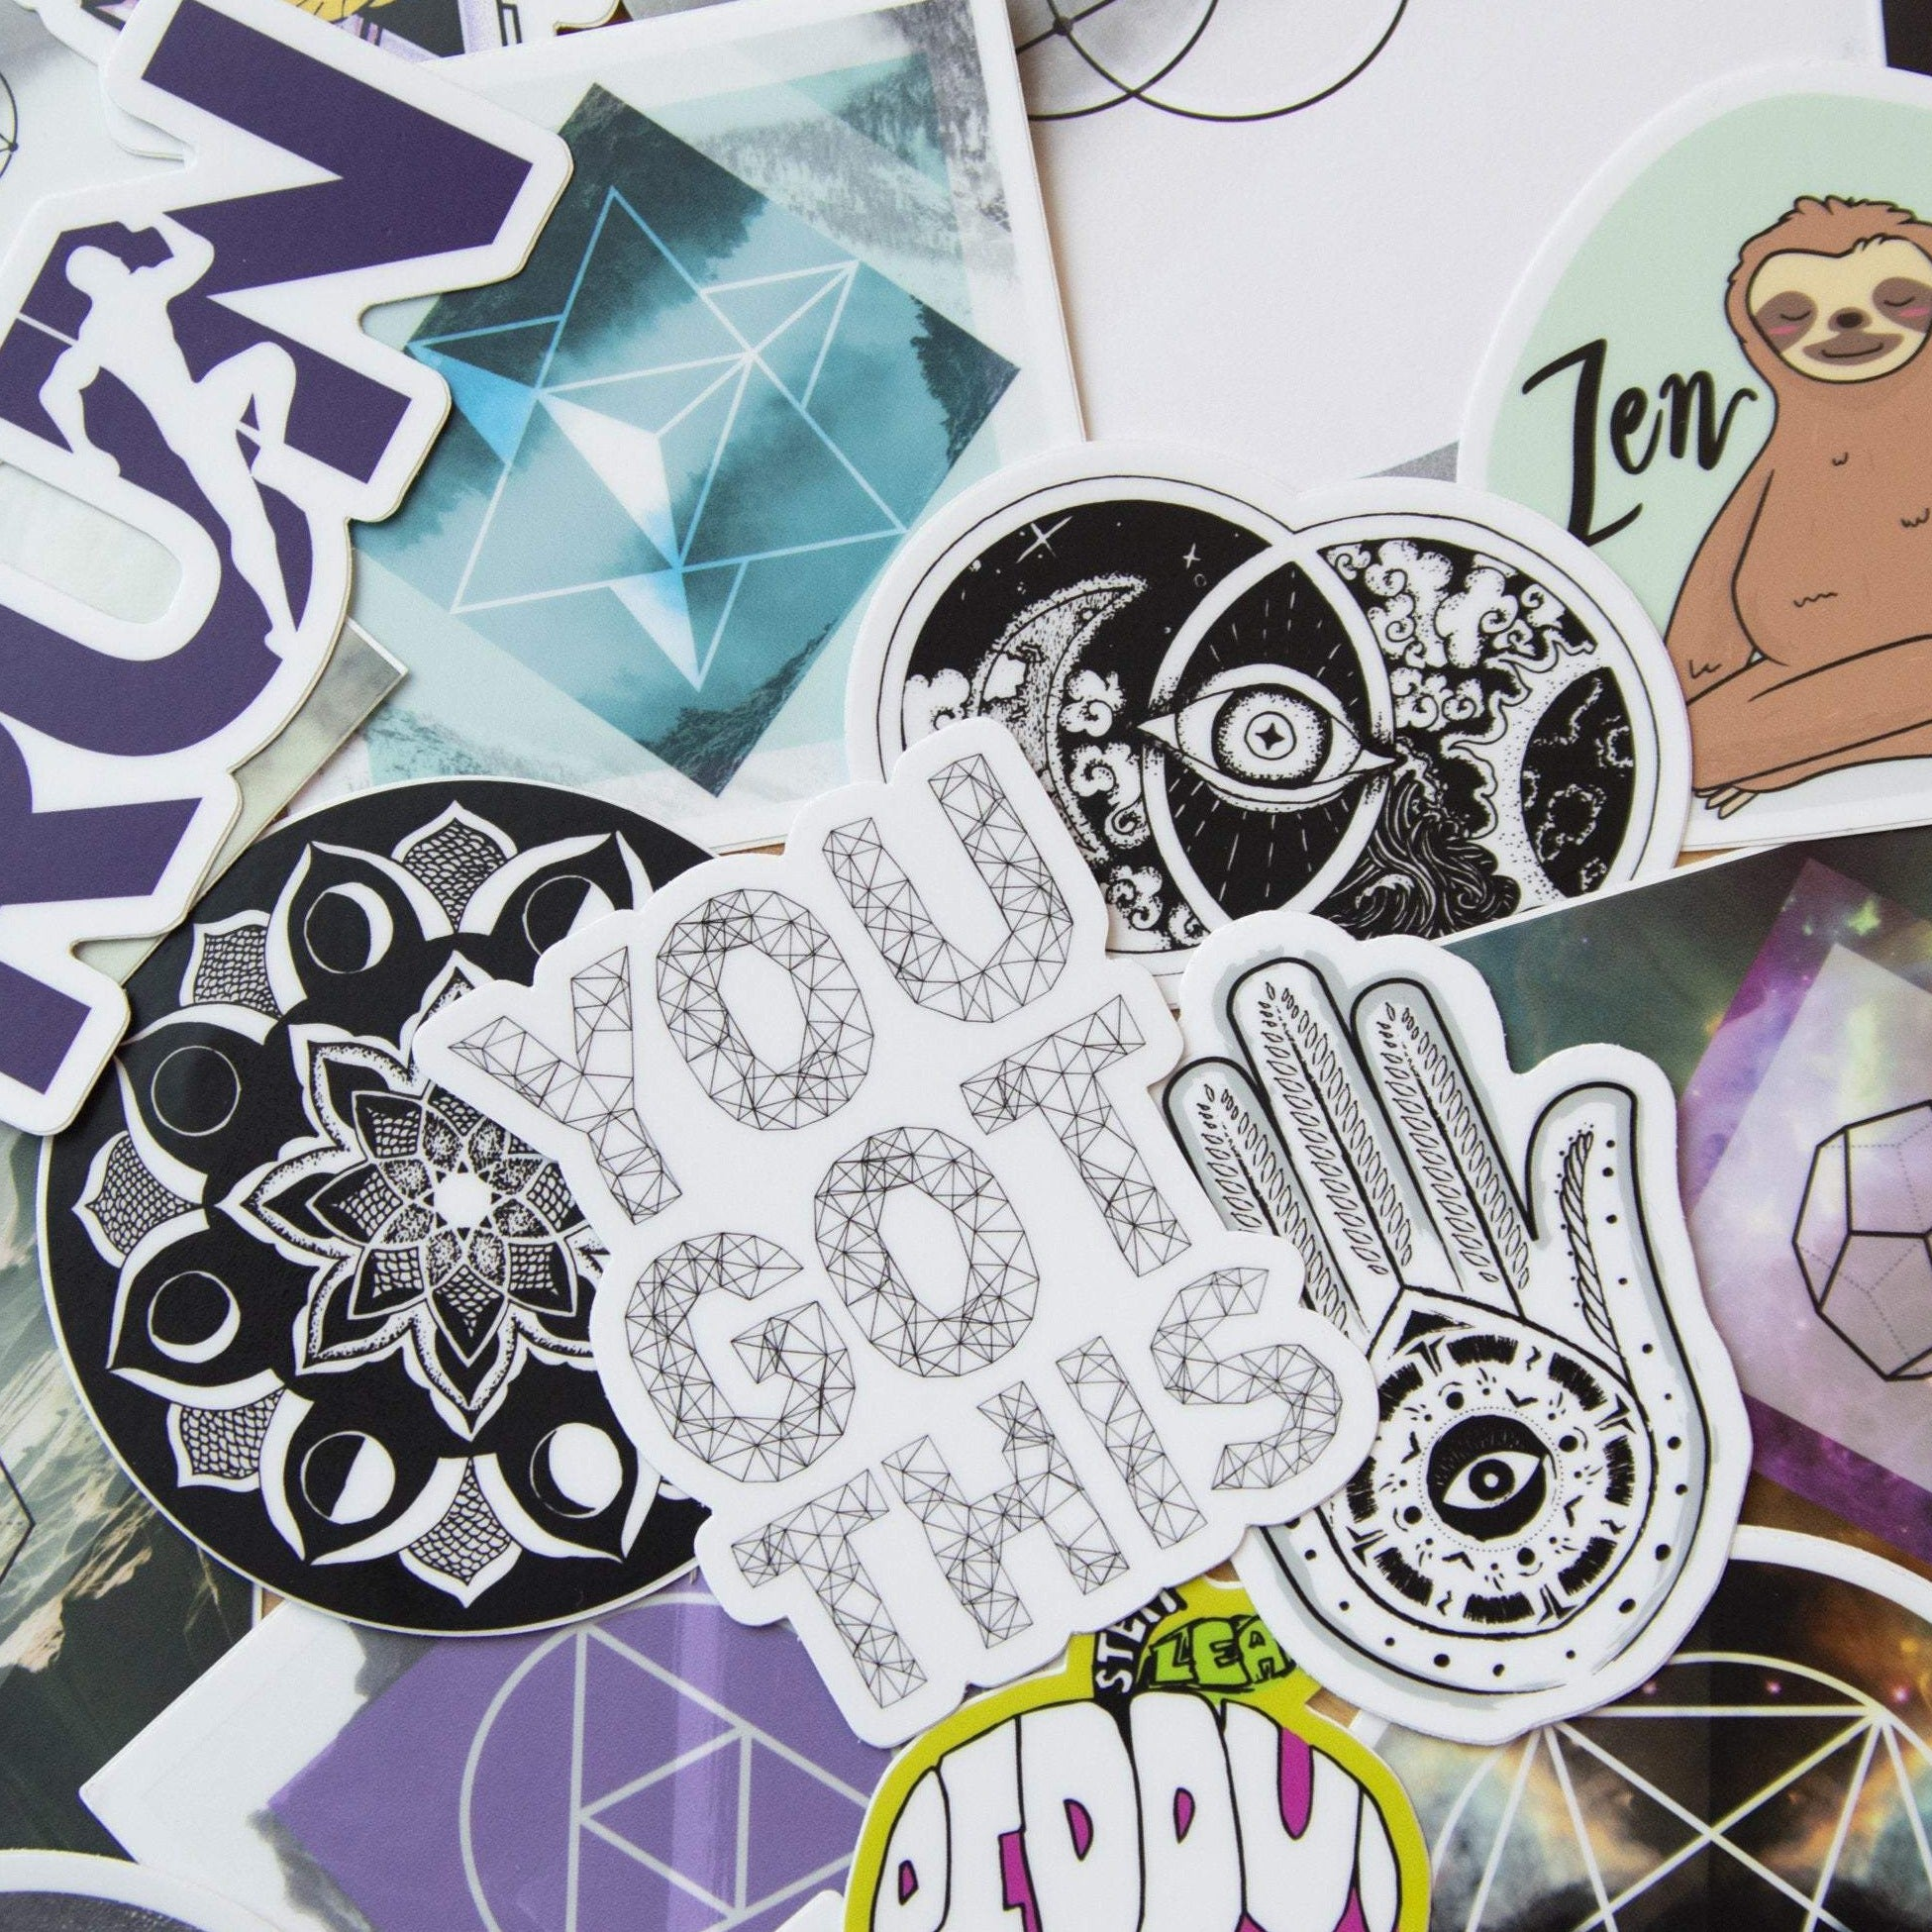 Random Sticker Pack - (5) Vinyl Stickers, travel, nature enthusiast, backpacking, outdoors, sacred geometry, geometric, art stickers